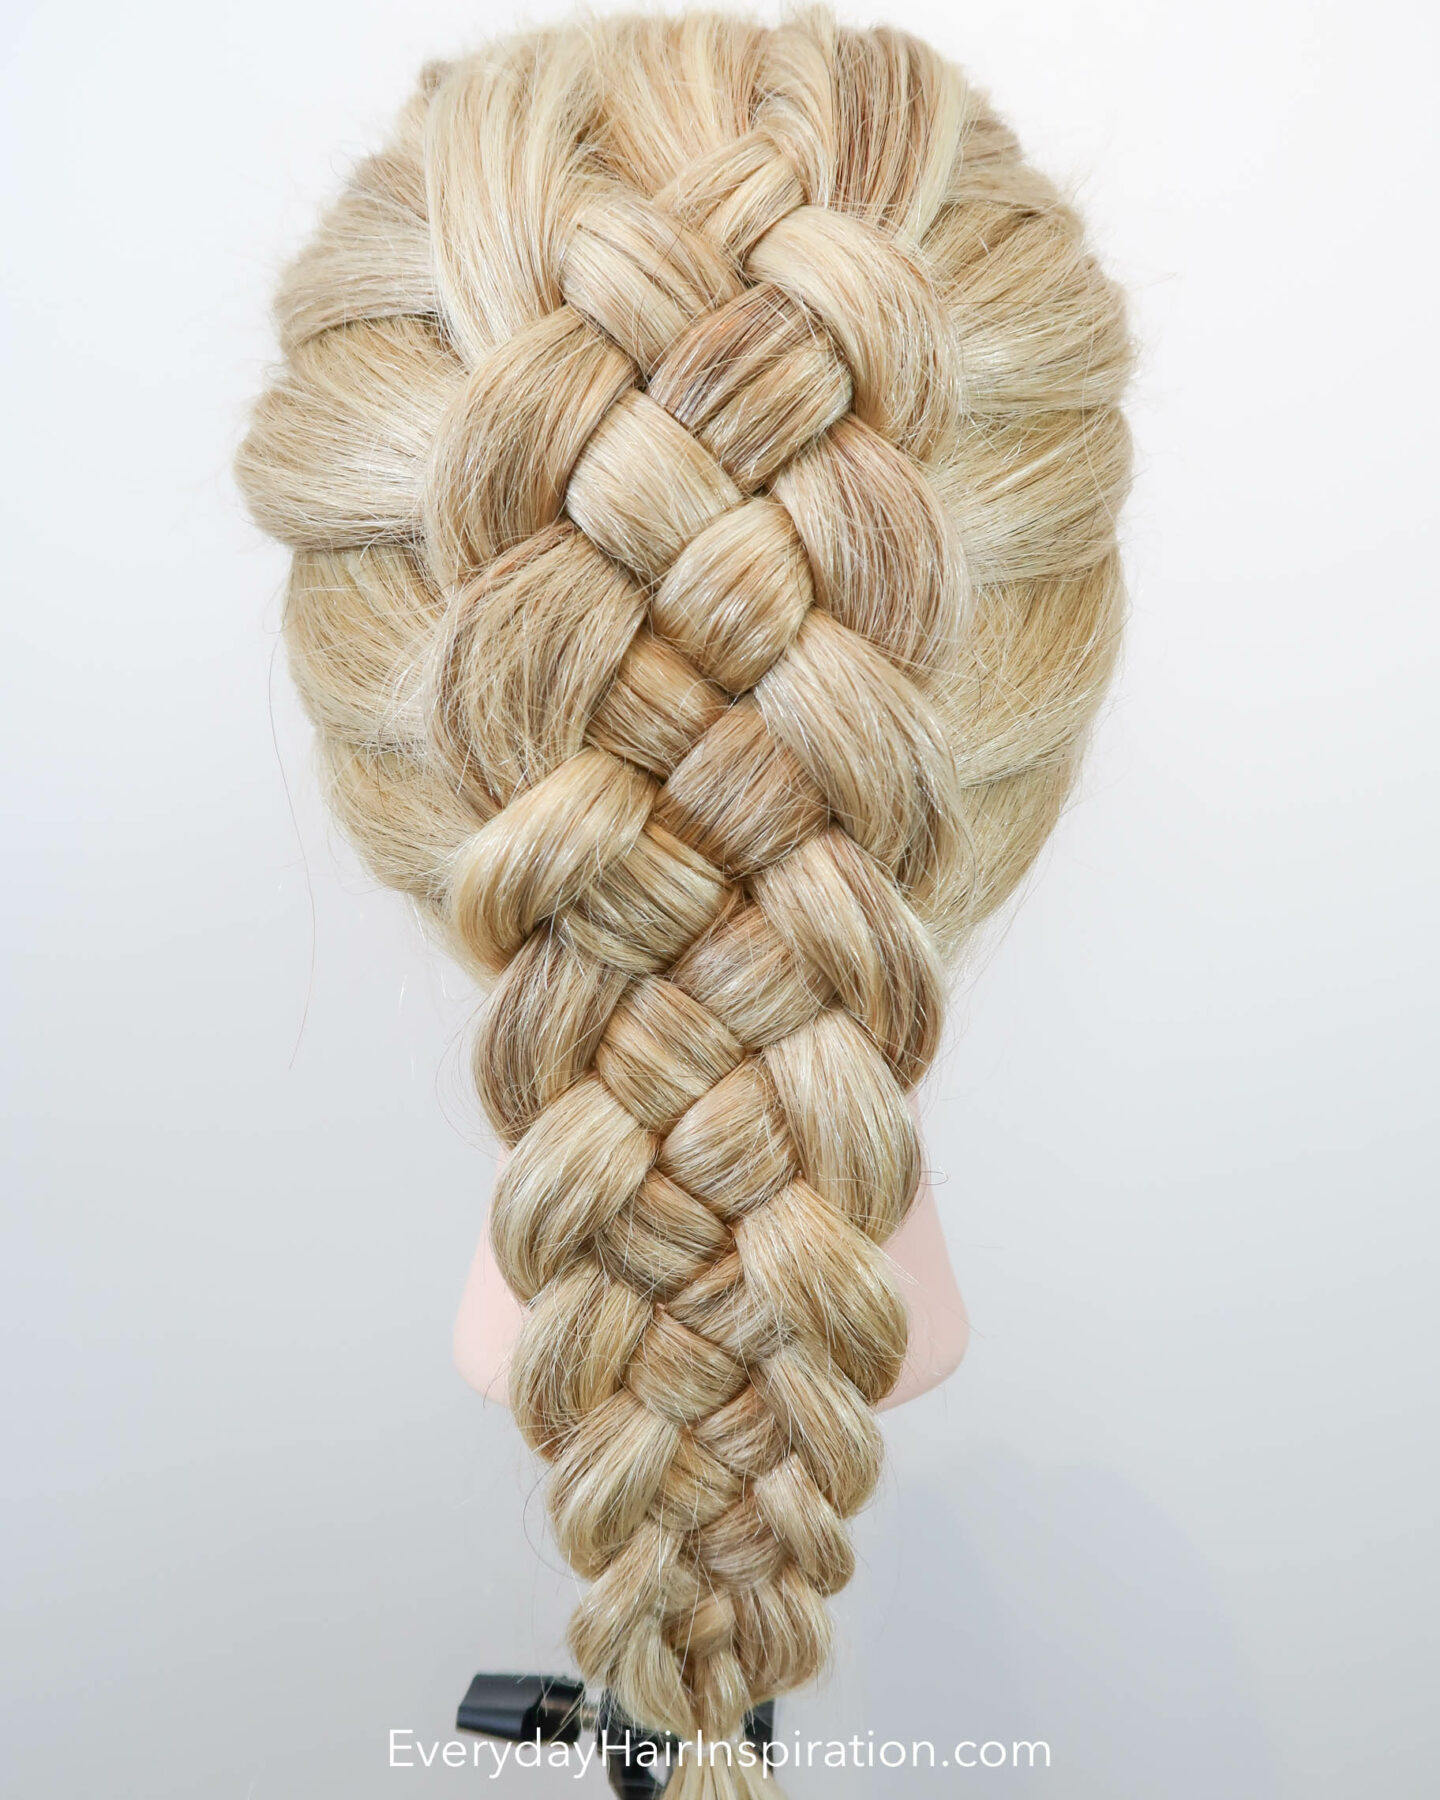 Blonde hairdresser doll with the hair styled into a dutch 5 strand braid, seen from the back.